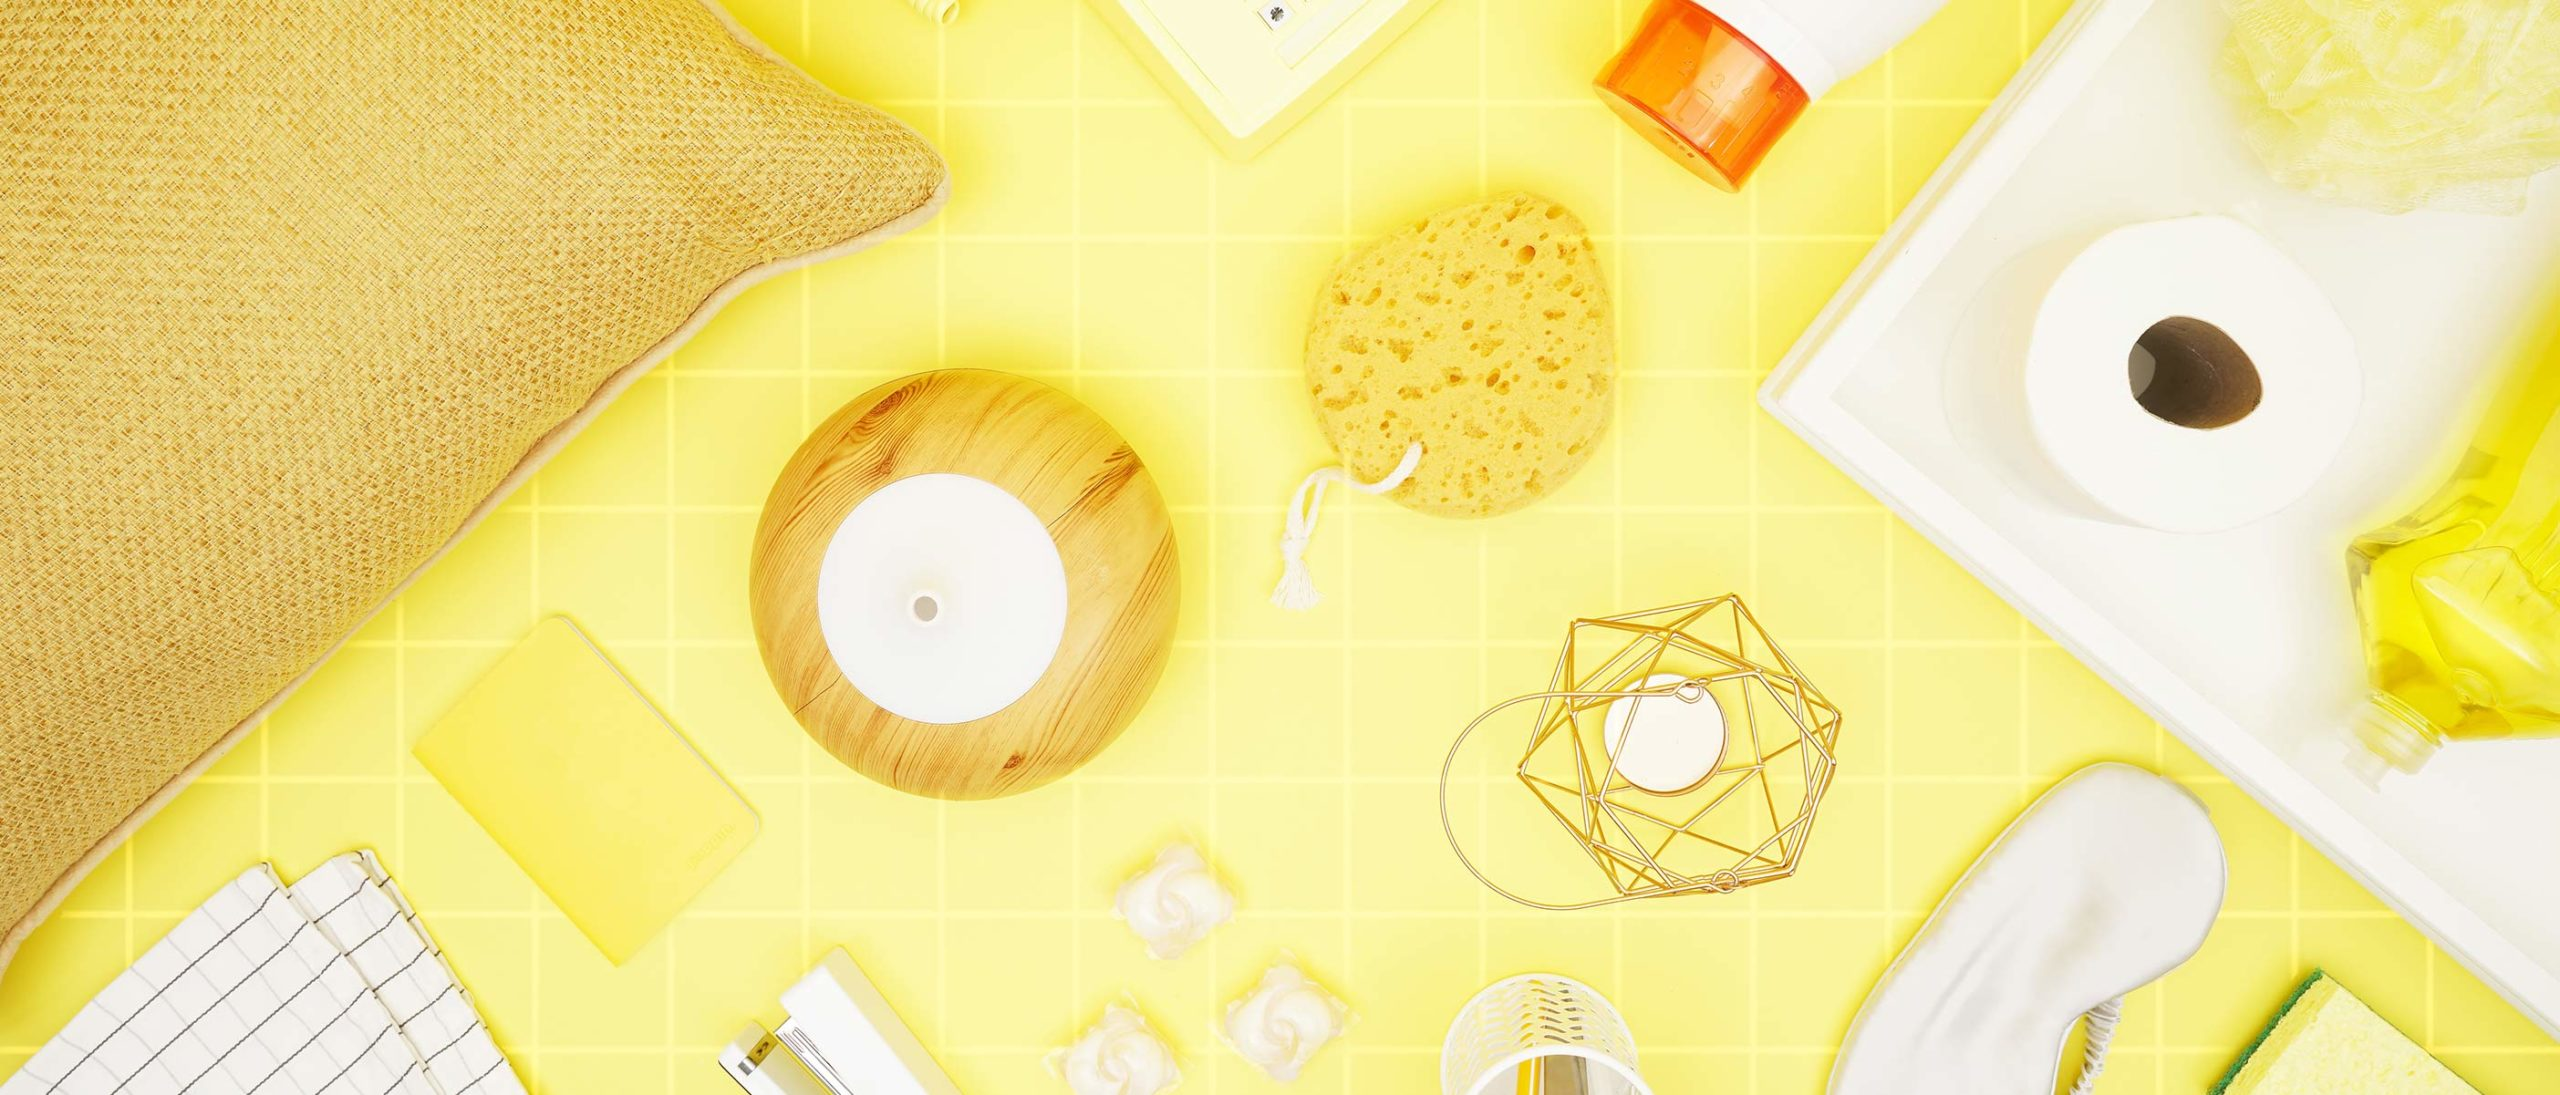 various dorm-related items laid out on a yellow backround: pillow, humidifier, toilet paper, laundry detergent, loofah, sleeping mask